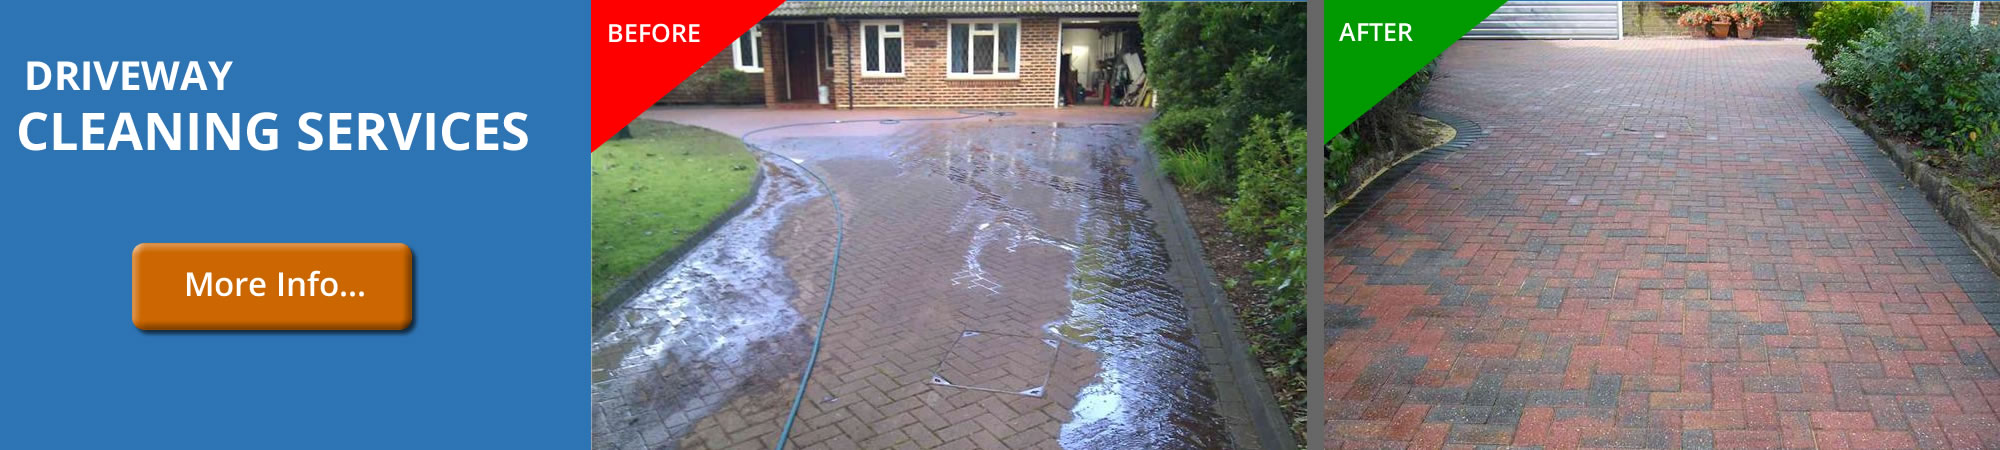 drivewaycleaningservices